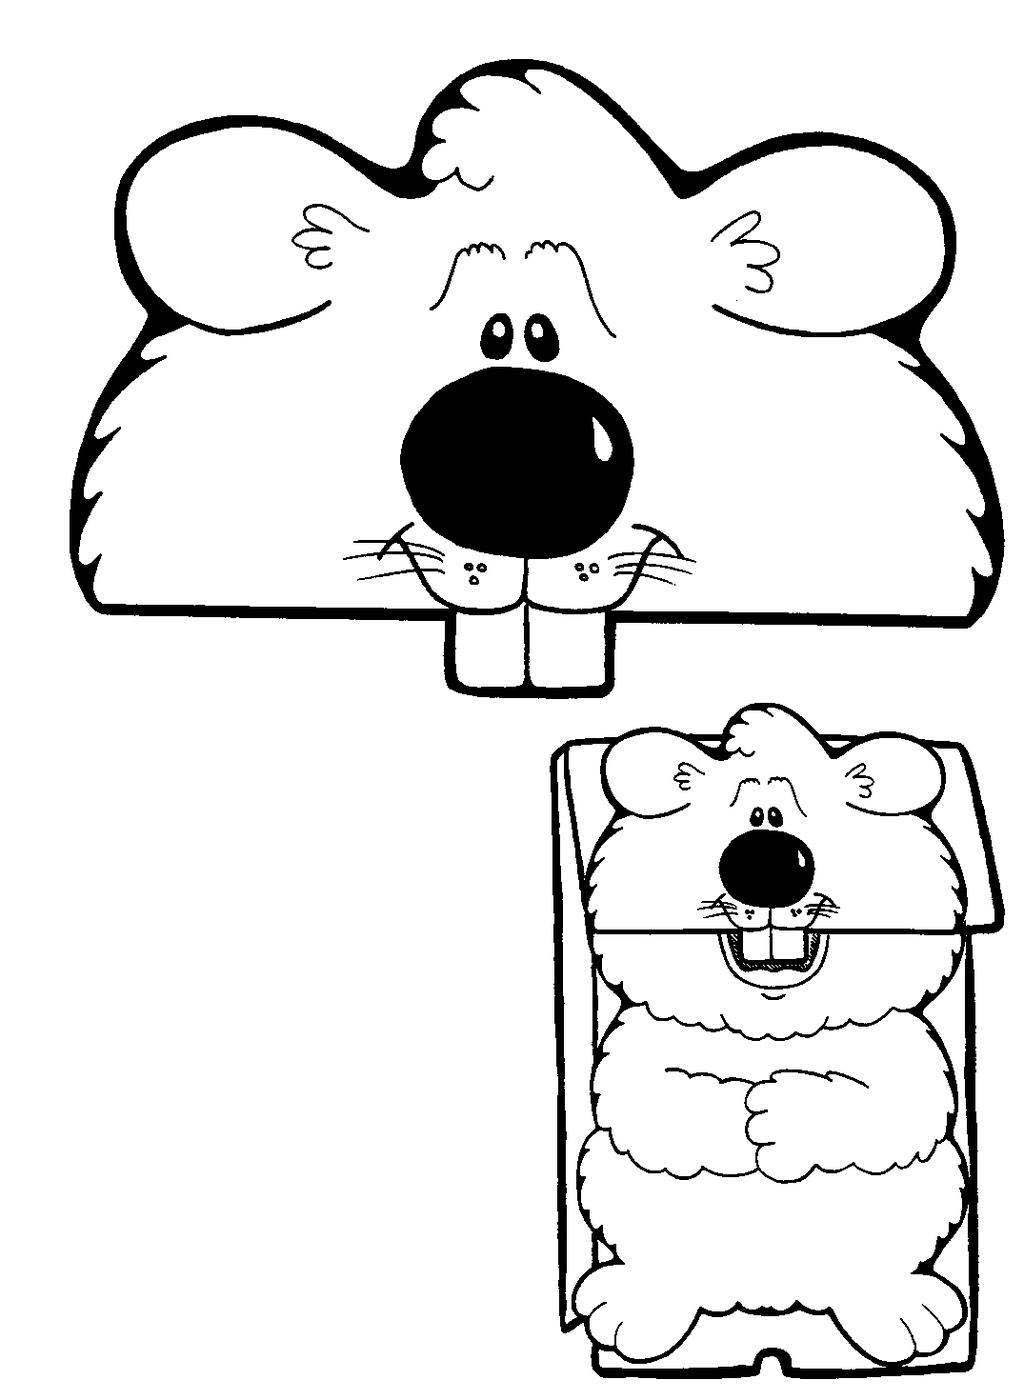 Groundhog Day Printable Coloring Pages Groundhog Day Coloring Pages Sheet Ethicstech Drawings Free